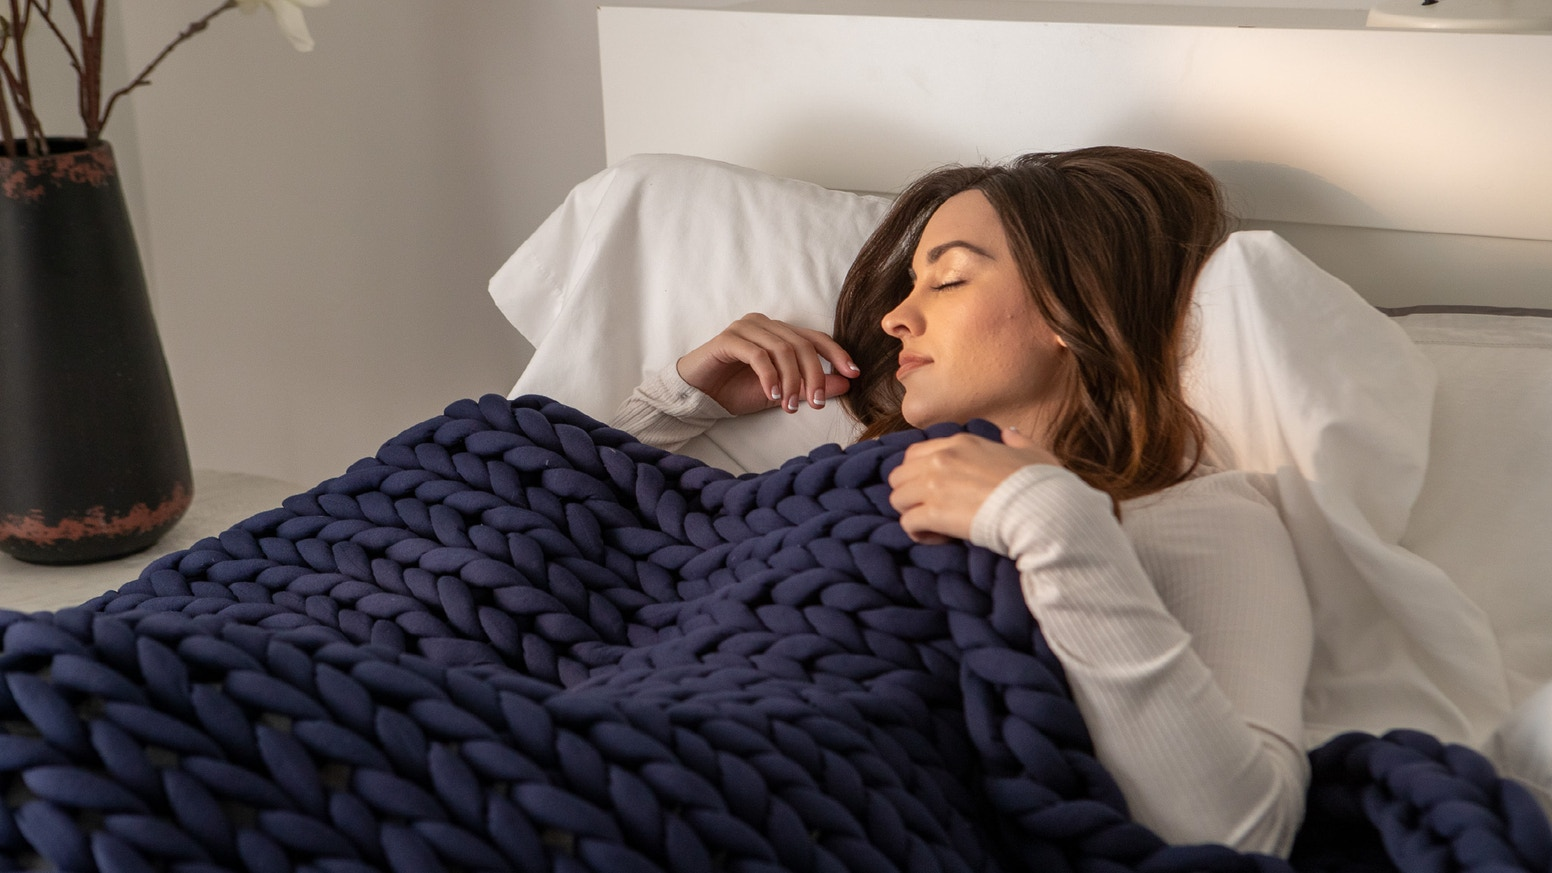 Fall asleep faster and stay asleep longer - no overheating or leaking beads with our beautifully hand knitted beadless Nuzzie Knit